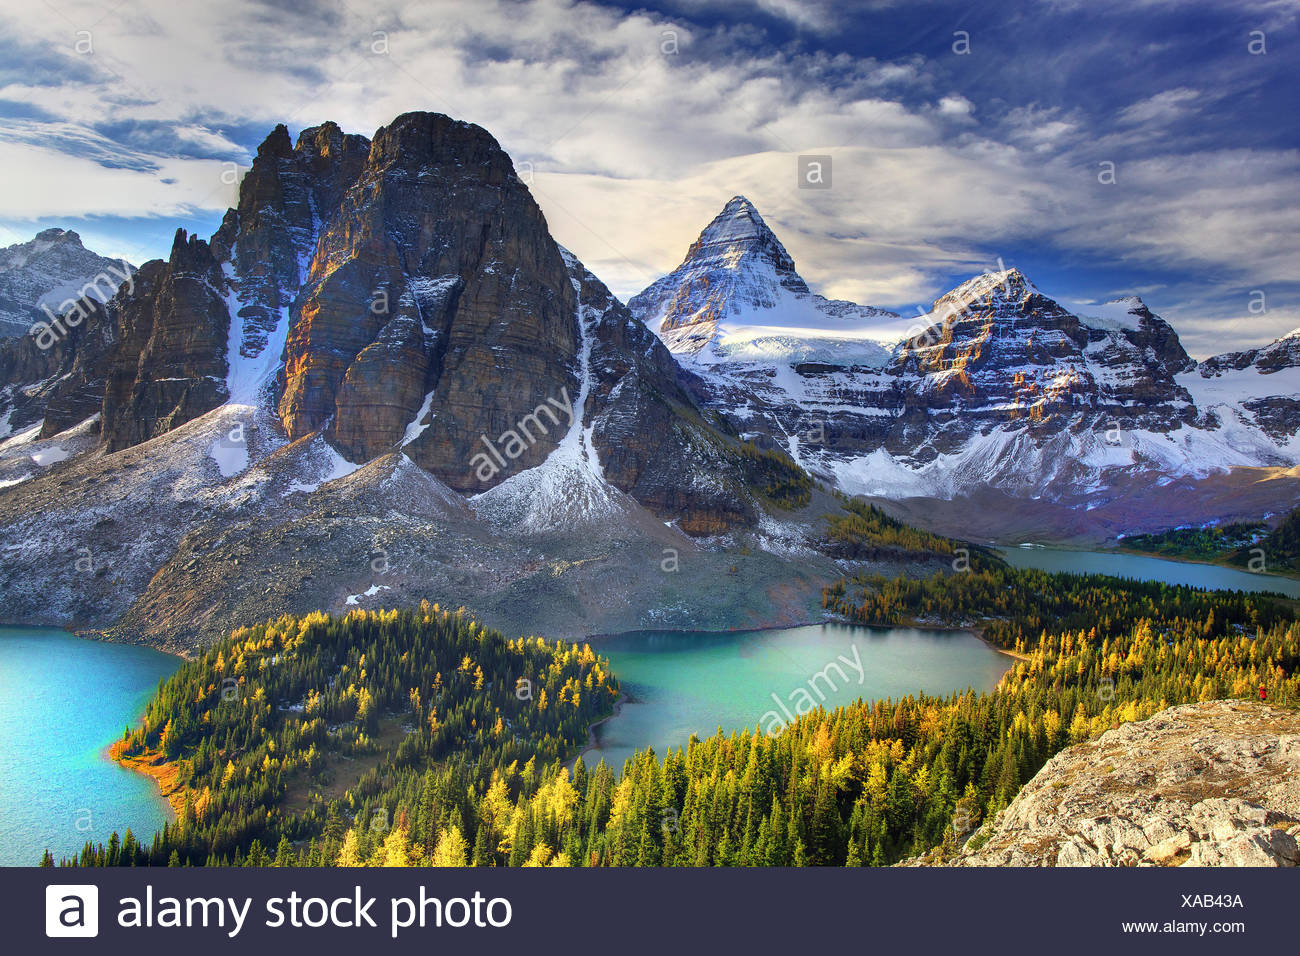 Canada, province, nature, landscape, Rockies, Canadian Rockies, mountains, lake, scenery, British Columbia, Mount Assiniboine, L - Stock Image